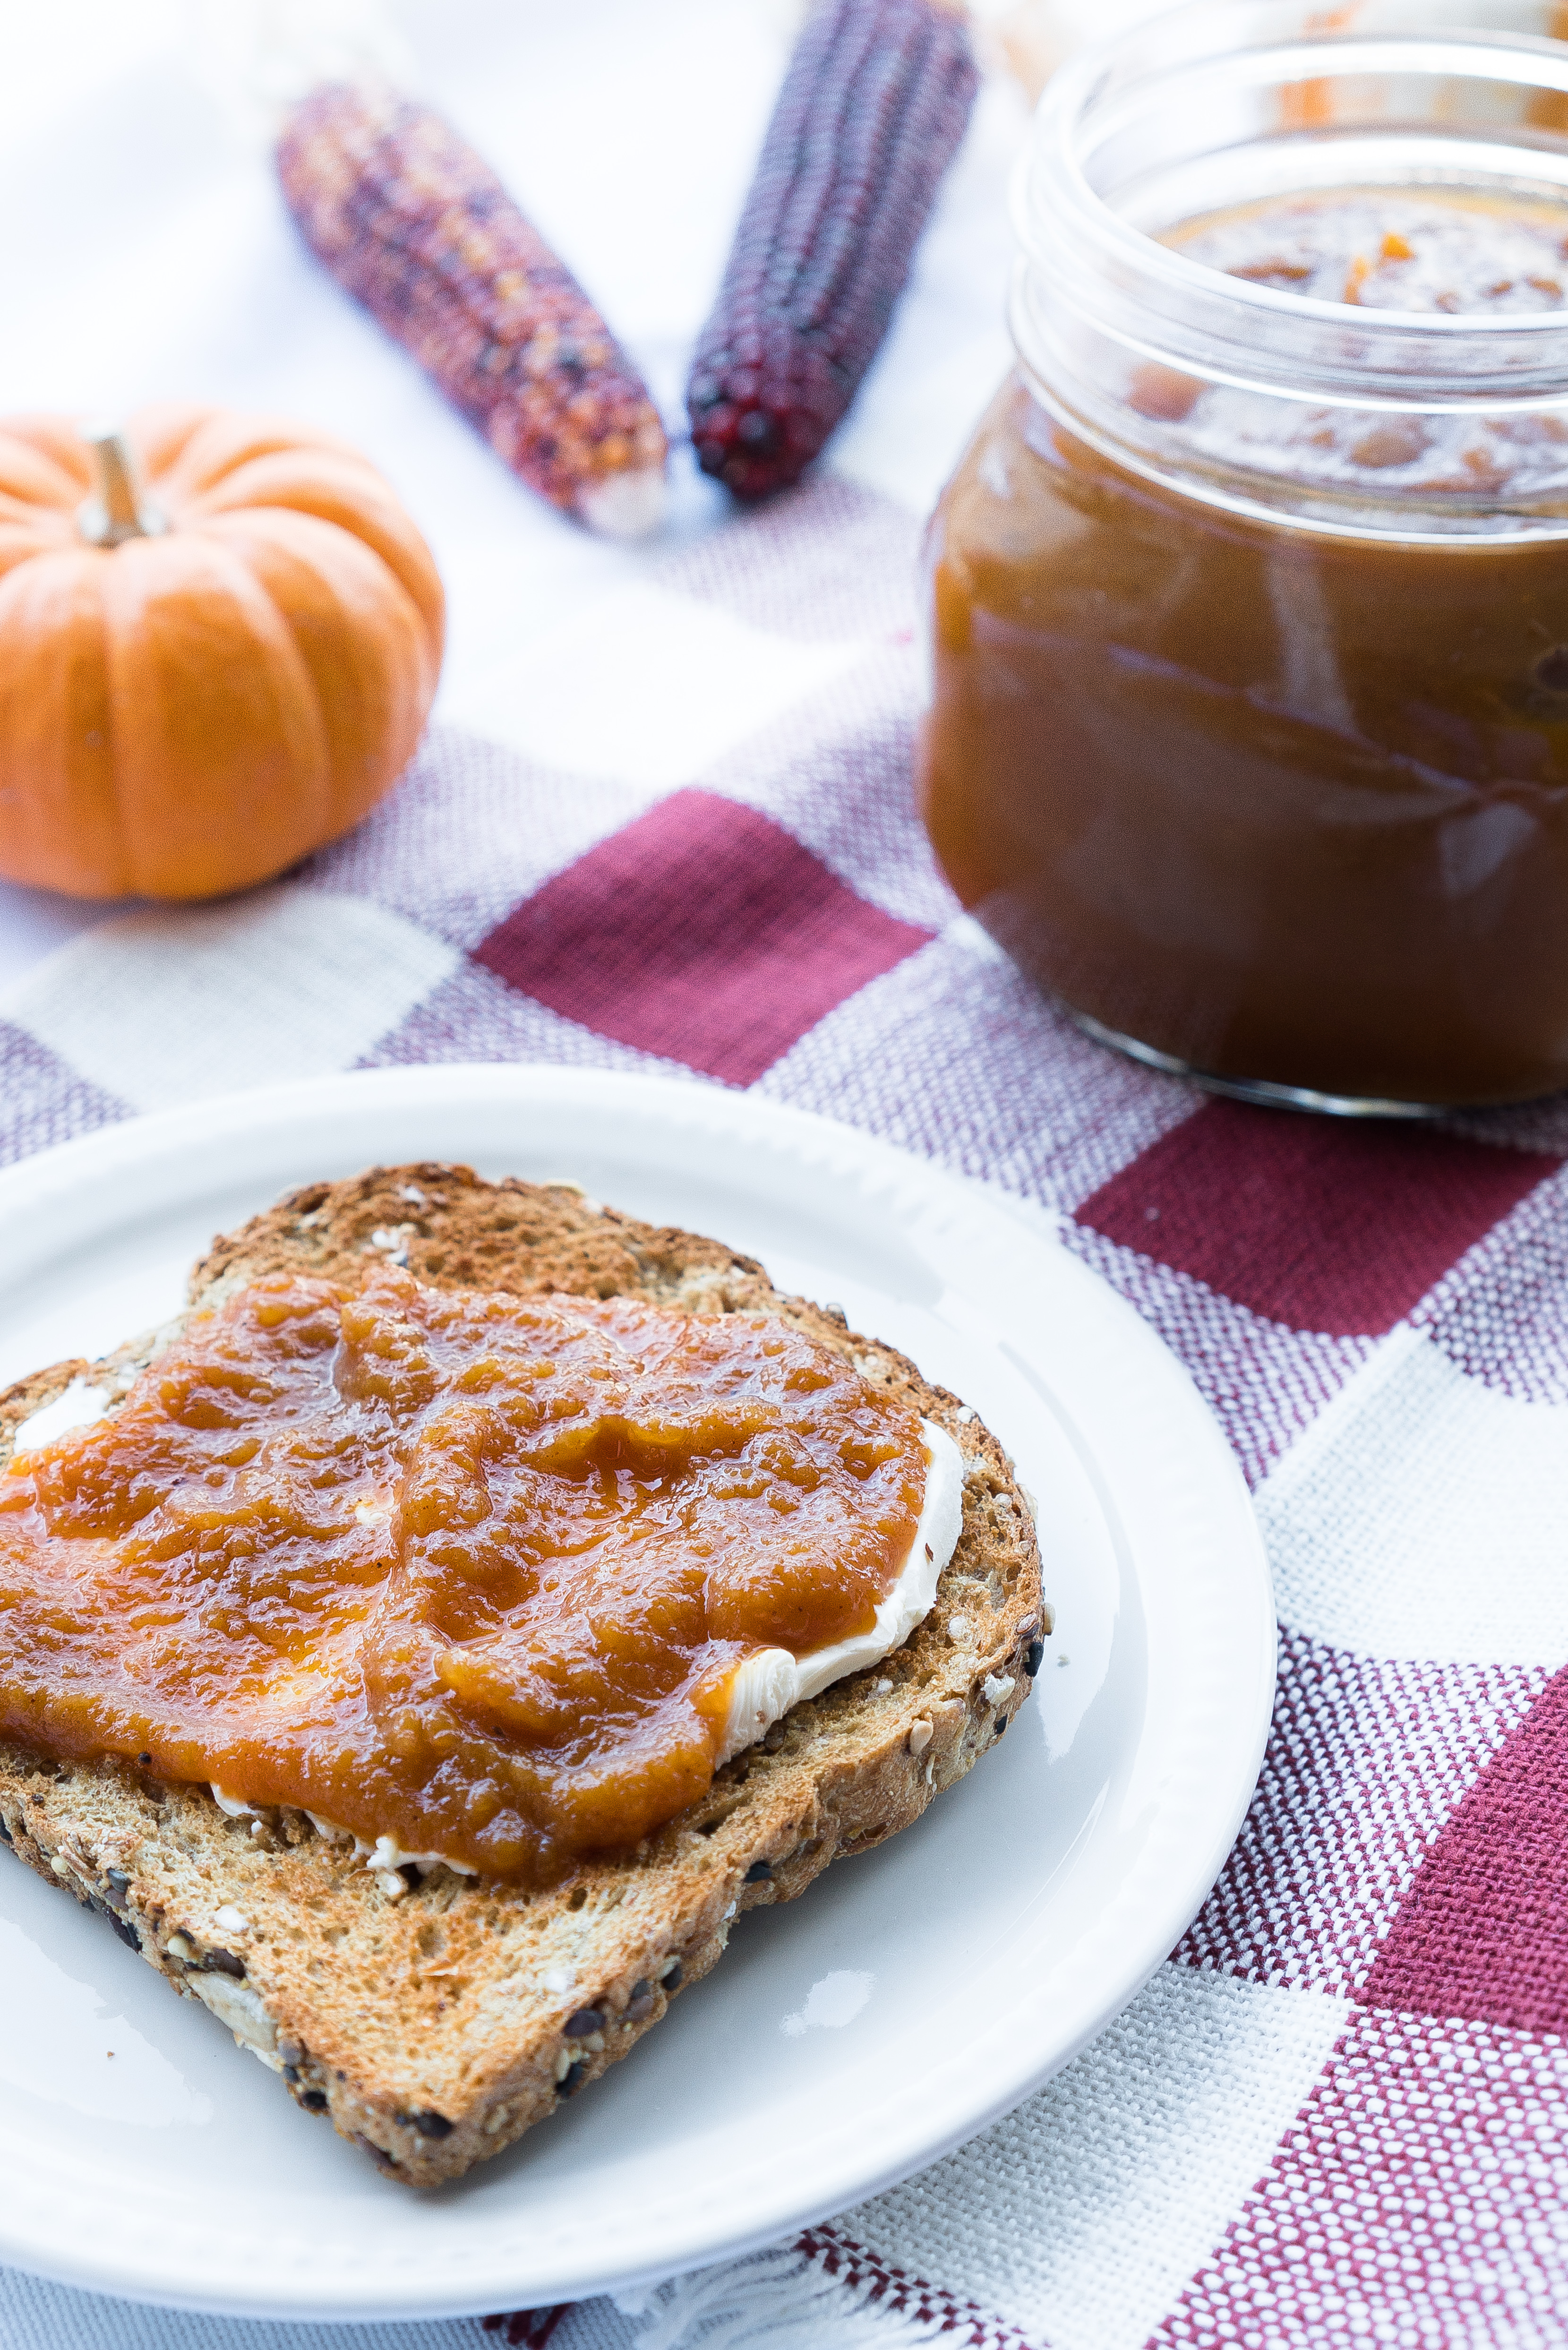 Apple Pumpkin Butter – Easy stove-top recipe for Apple Pumpkin Butter! Pumpkin puree, applesauce, maple syrup, brown sugar, and lemon juice are simmered together with cinnamon & spices. Perfect for holiday gifting or a touch of seasonal sweetness at breakfast! ♥ | freeyourfork.com